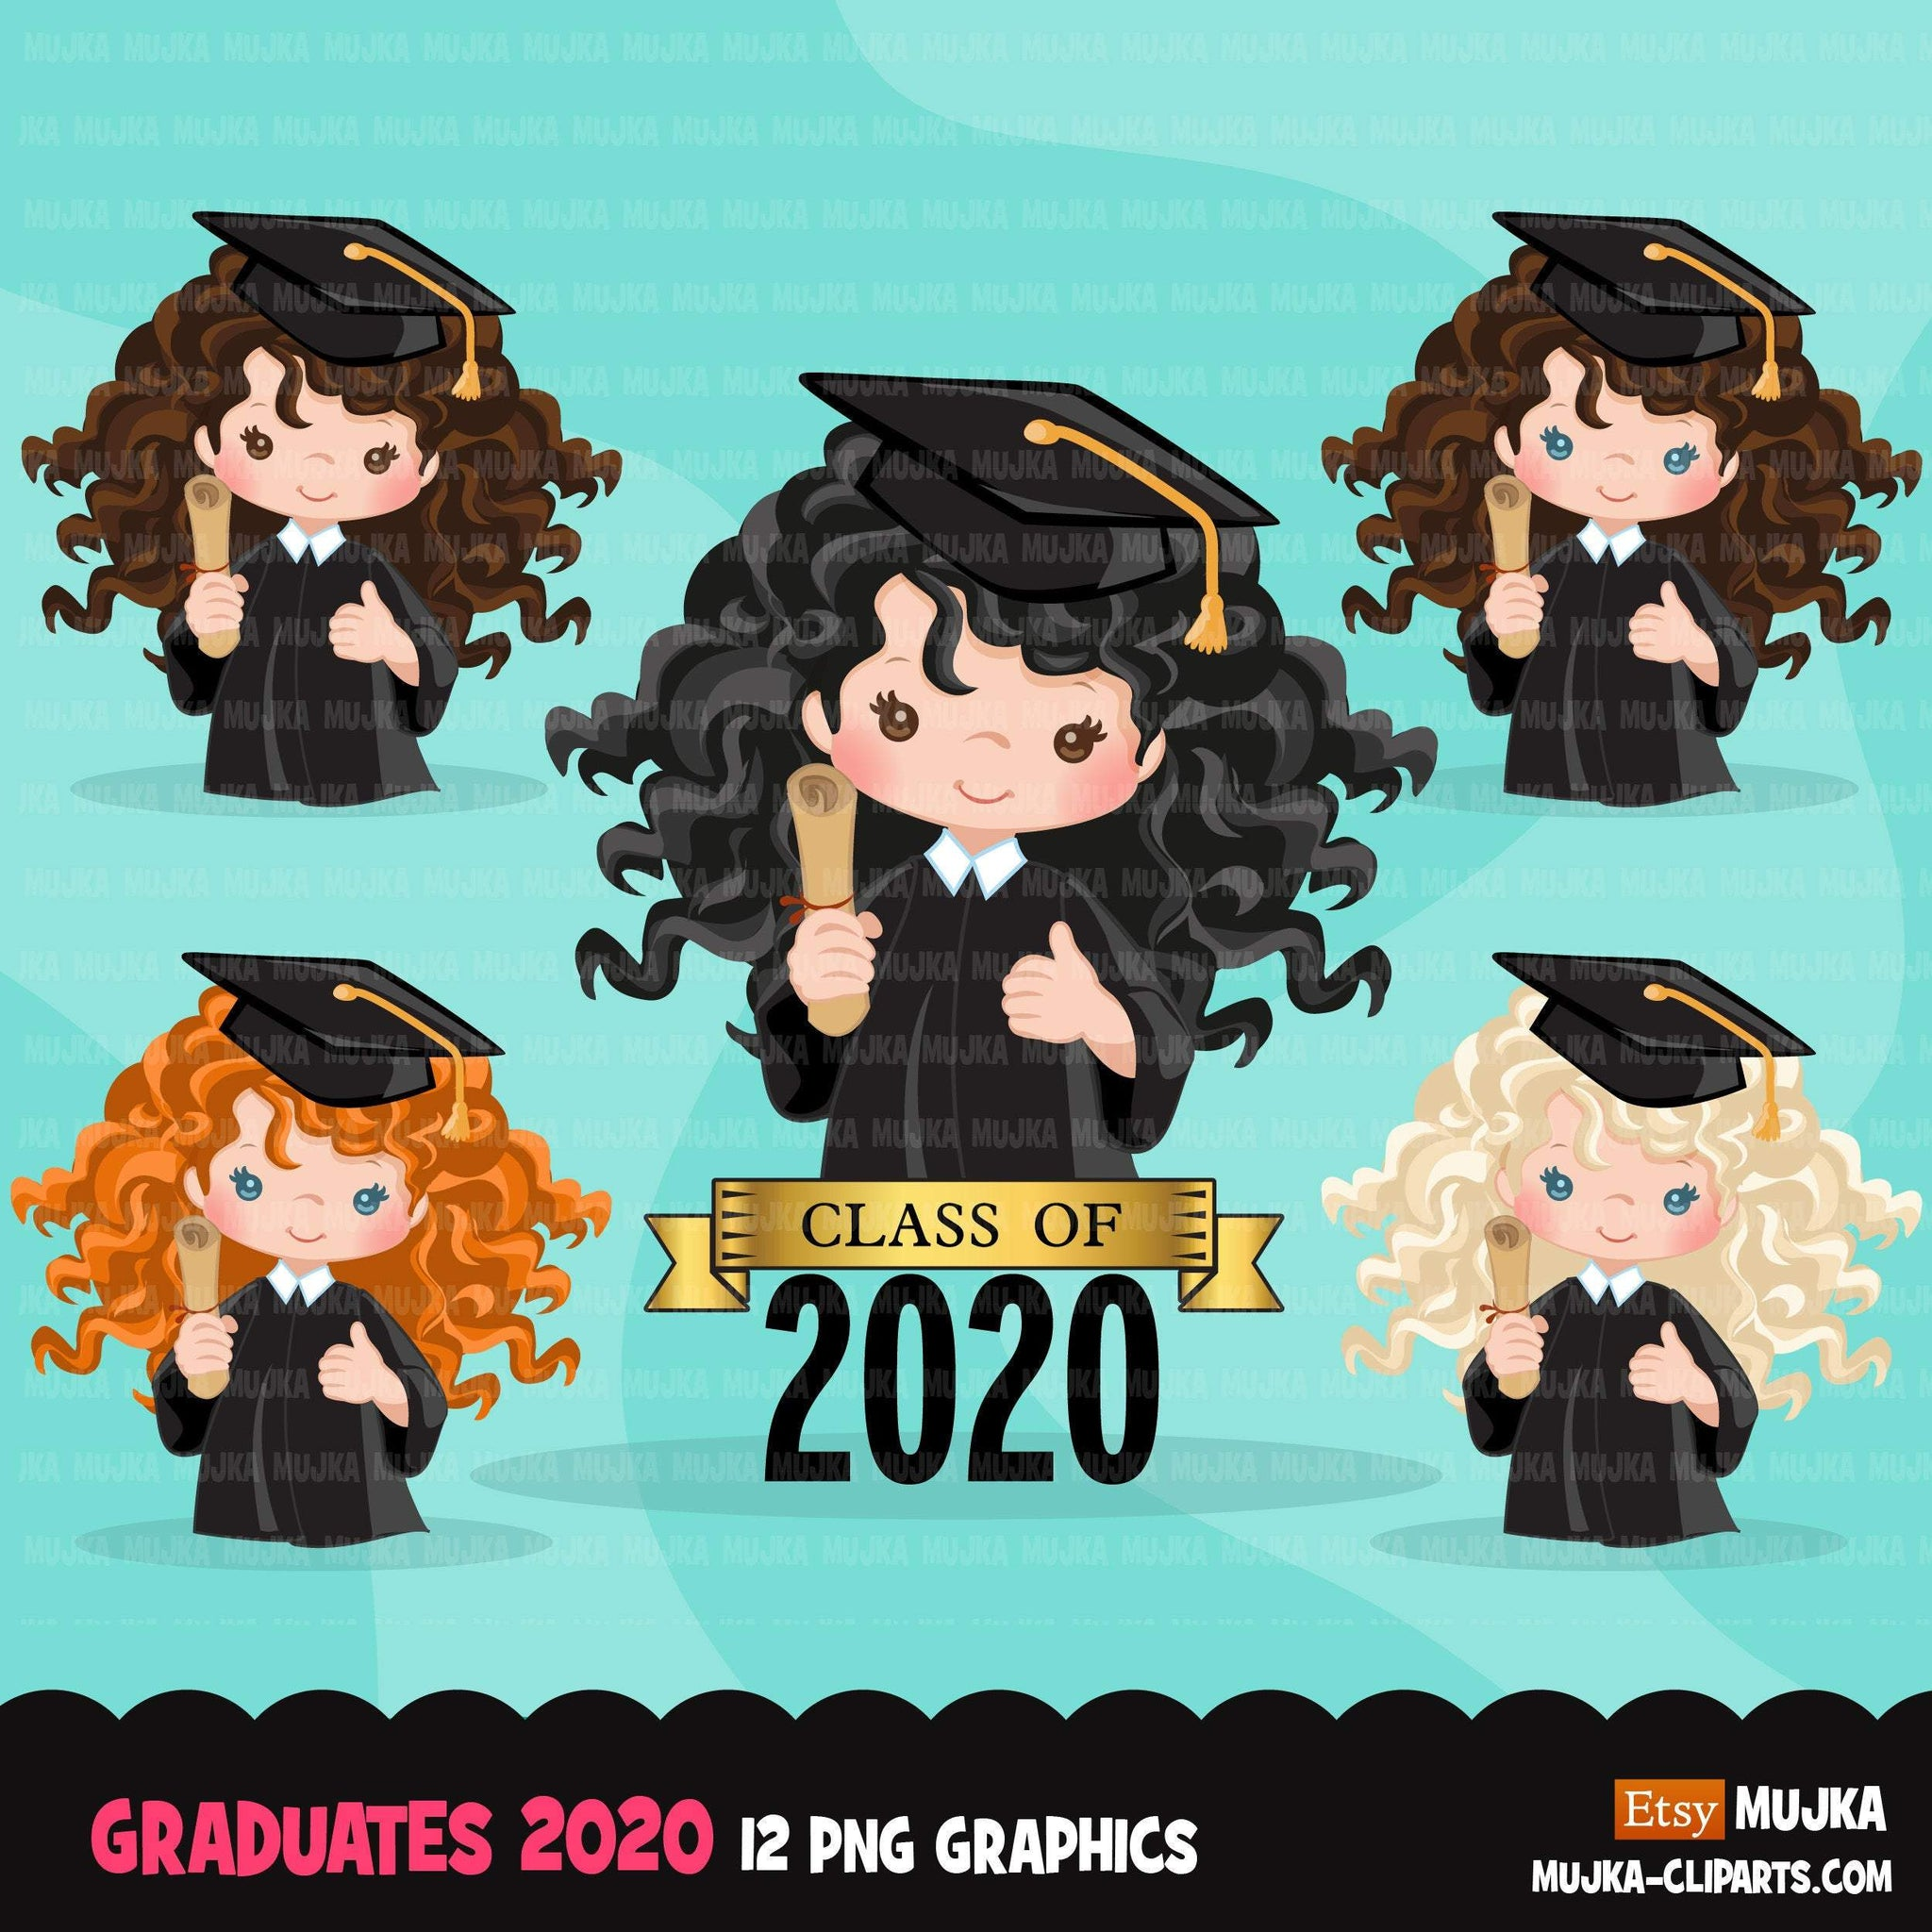 Graduation Clipart, 2020 graduate girls with cape and scroll, school, student class of 2020 gold banner graphics, PNG clip art